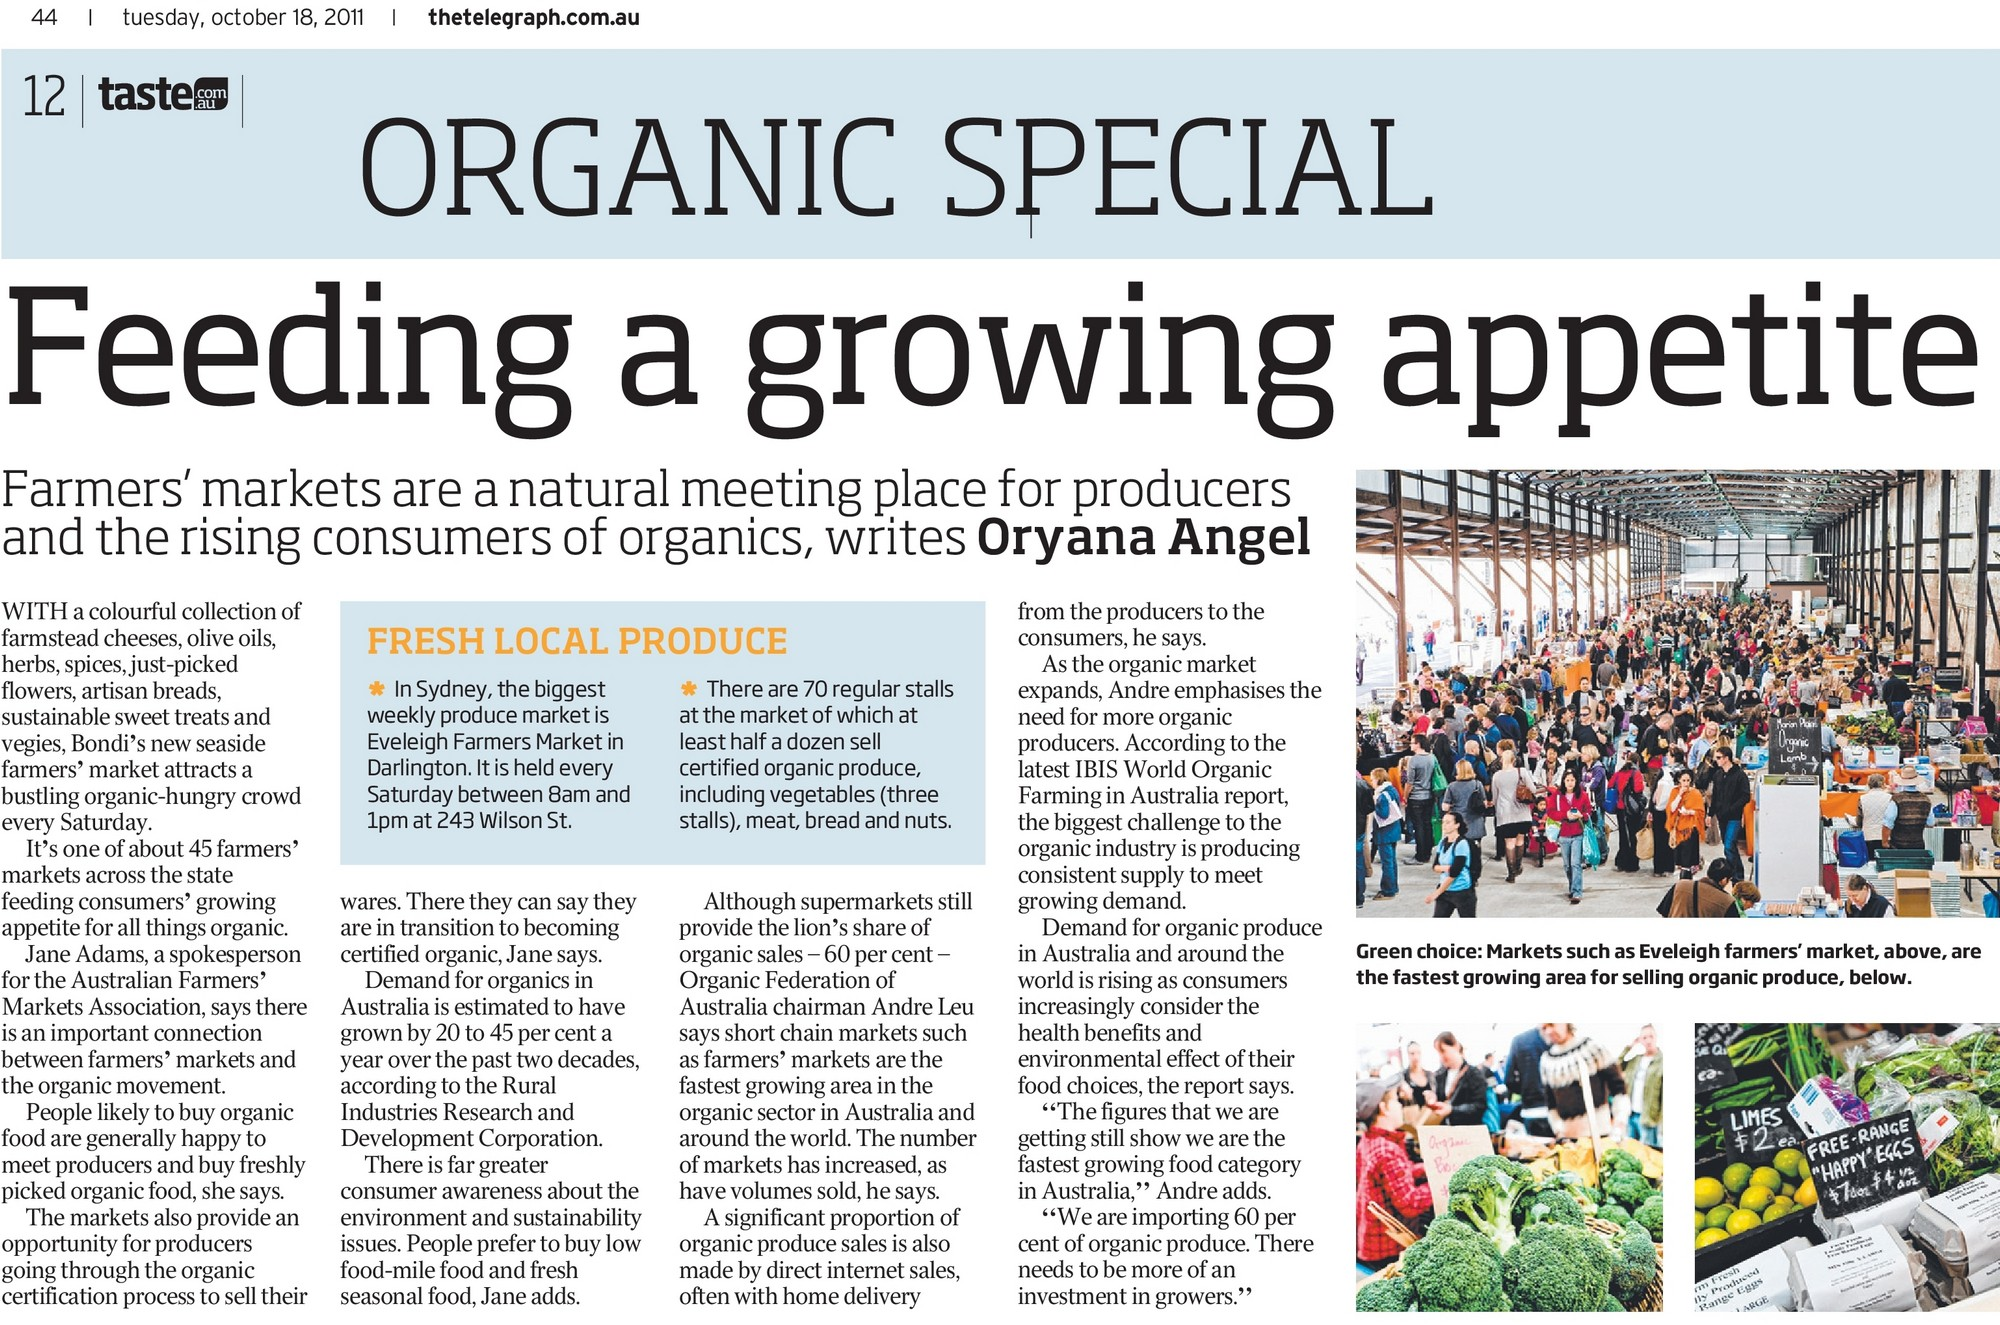 Farmers' markets are a natural meeting place for producers and the rising consumers of organics, writes Oryana Angel